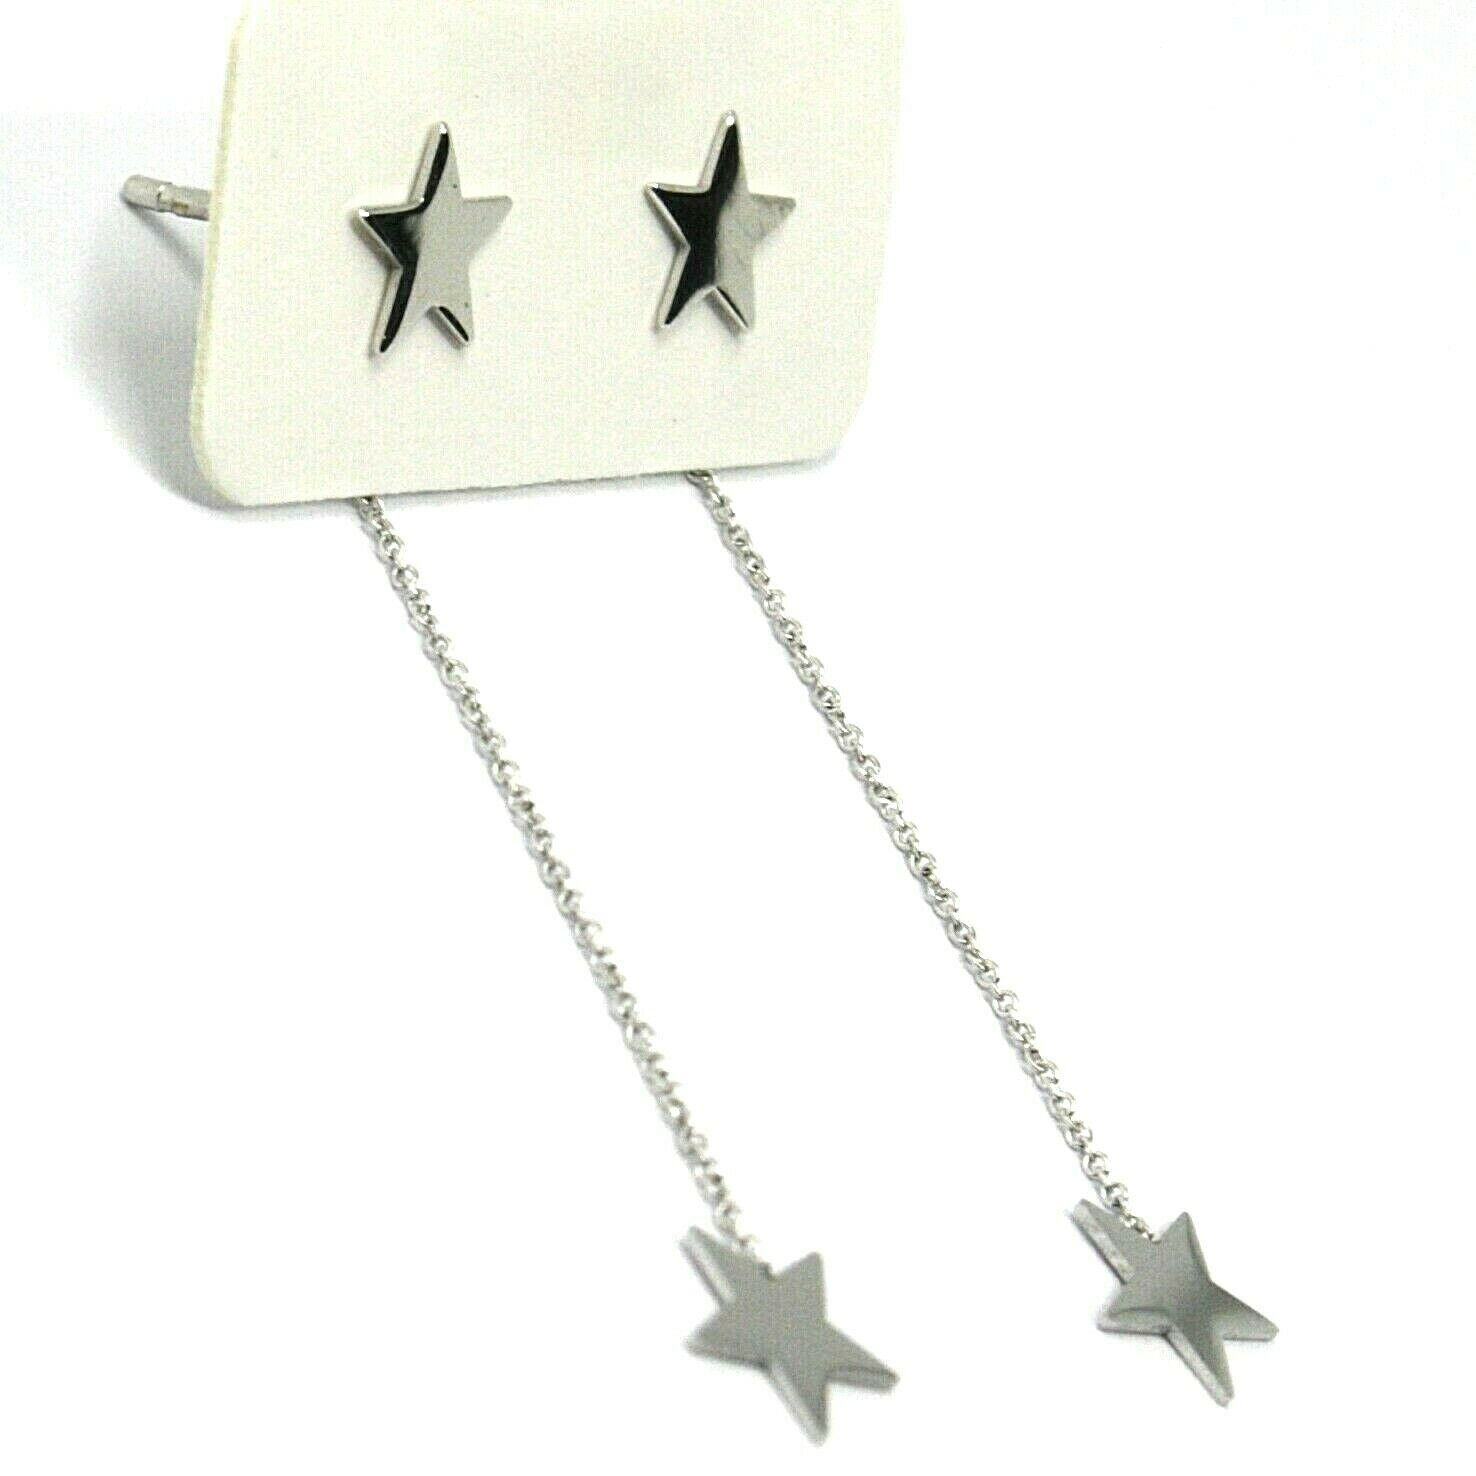 18K WHITE GOLD PENDANT EARRINGS FLAT DOUBLE STAR, SHINY, SMOOTH, ROLO CHAIN